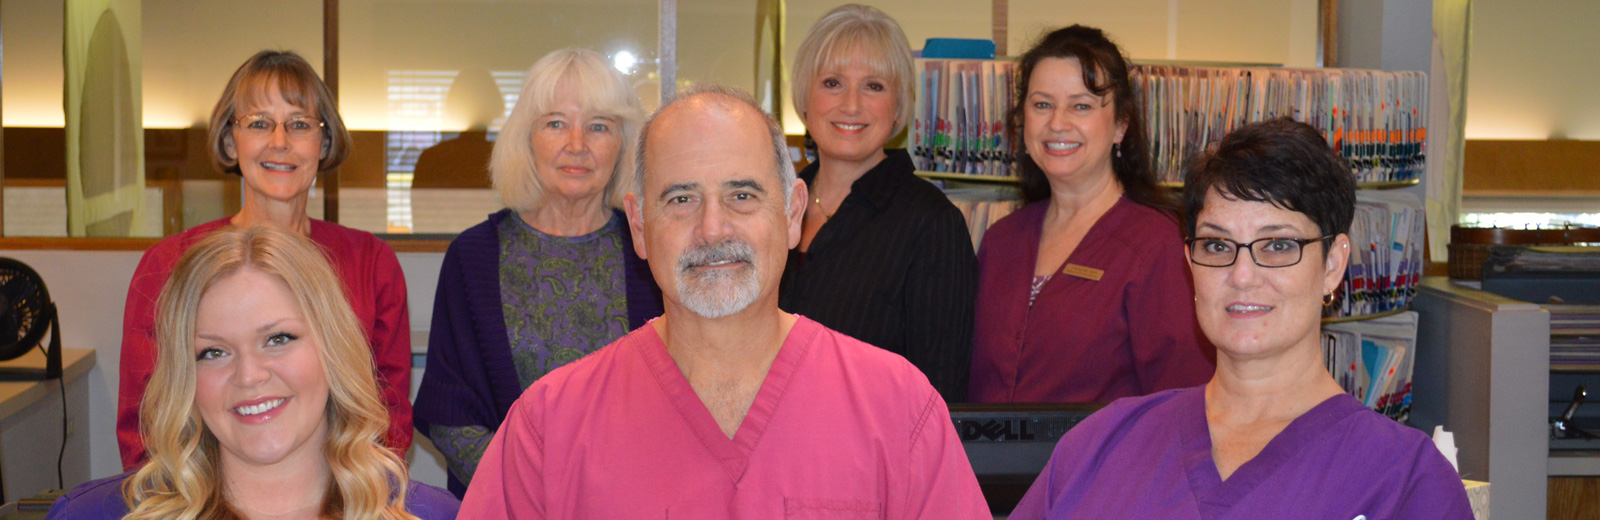 Tracyton Dental Center staff